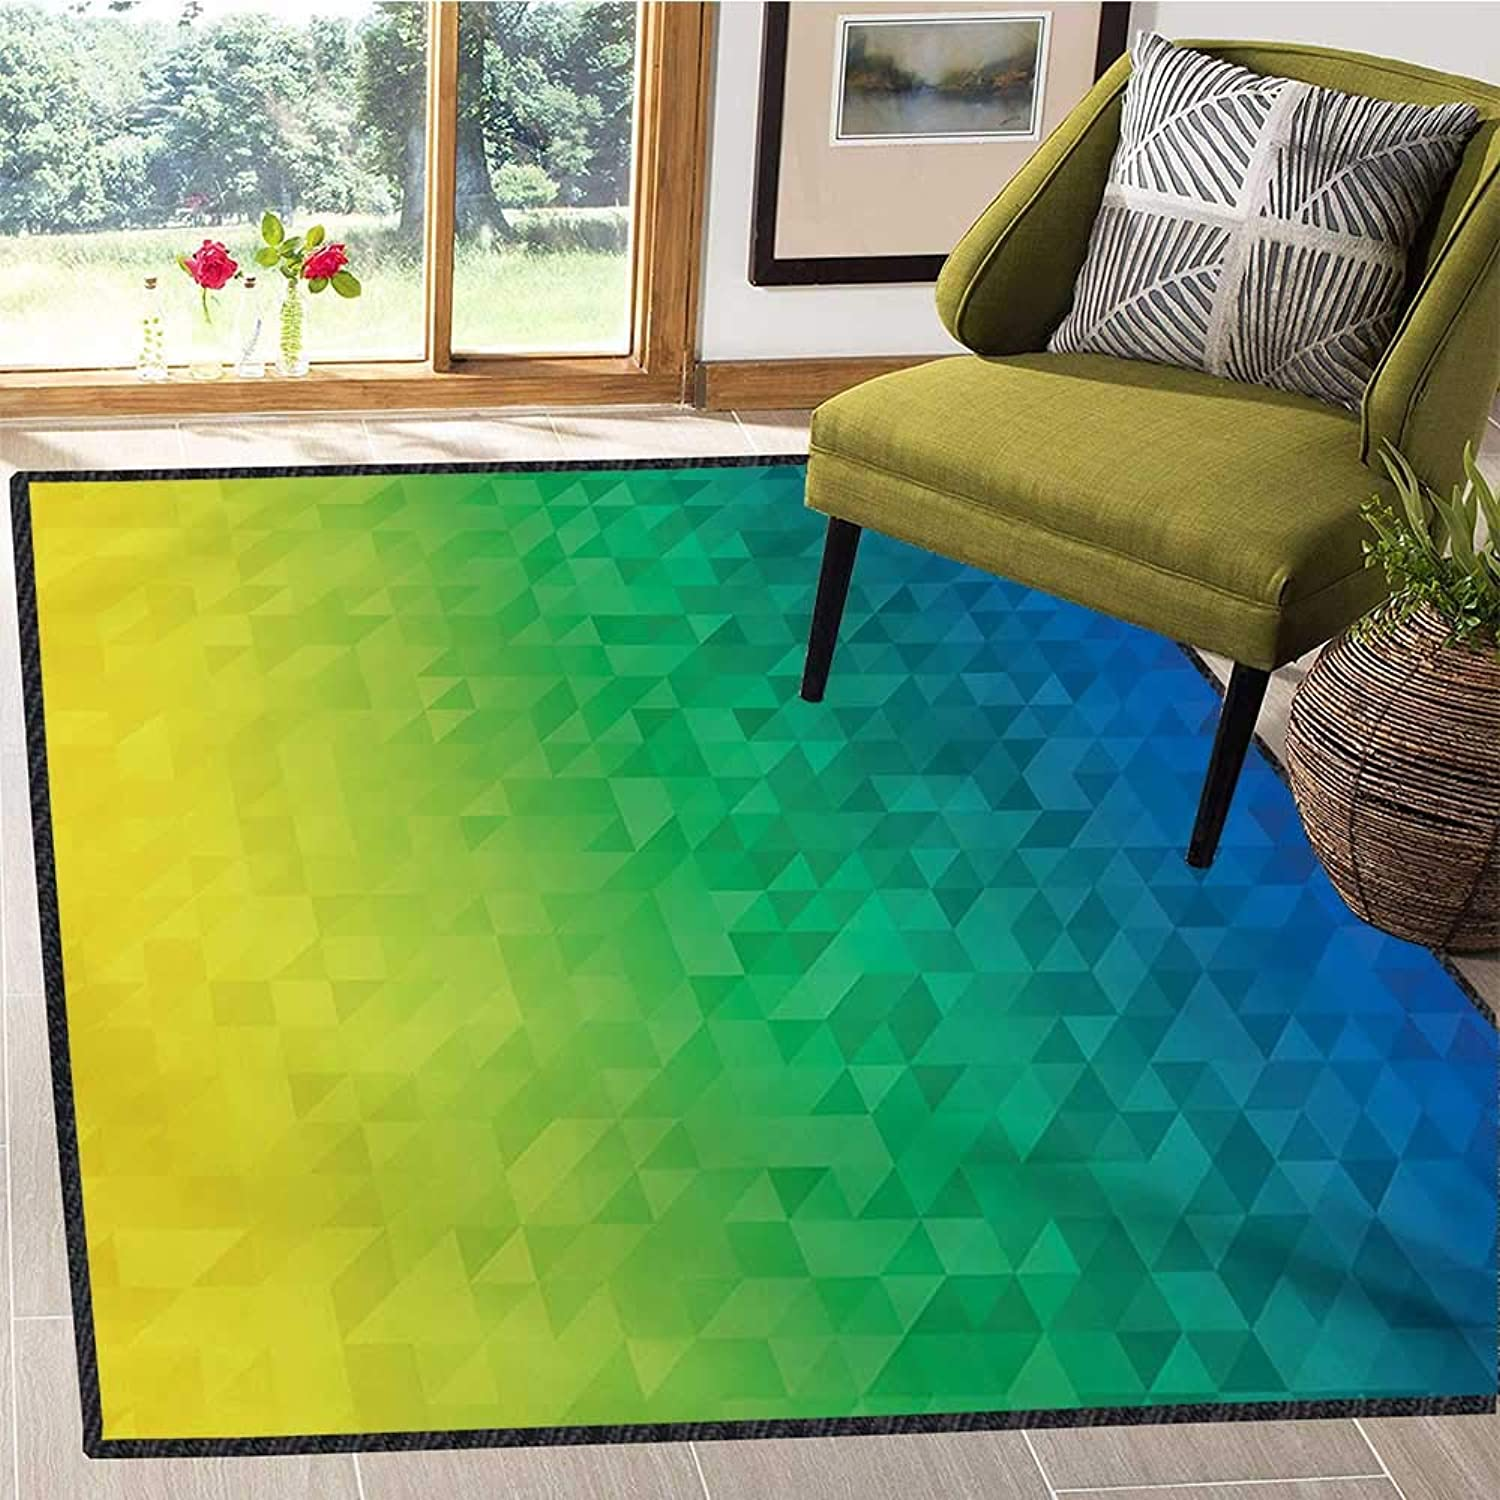 Yellow and bluee, Door Mats for Inside, Ombre Inspired Abstract Fractal Mosaic Form in Brazil Flag colors, Door Mats for Inside Non Slip Backing 4x5 Ft bluee Green Yellow